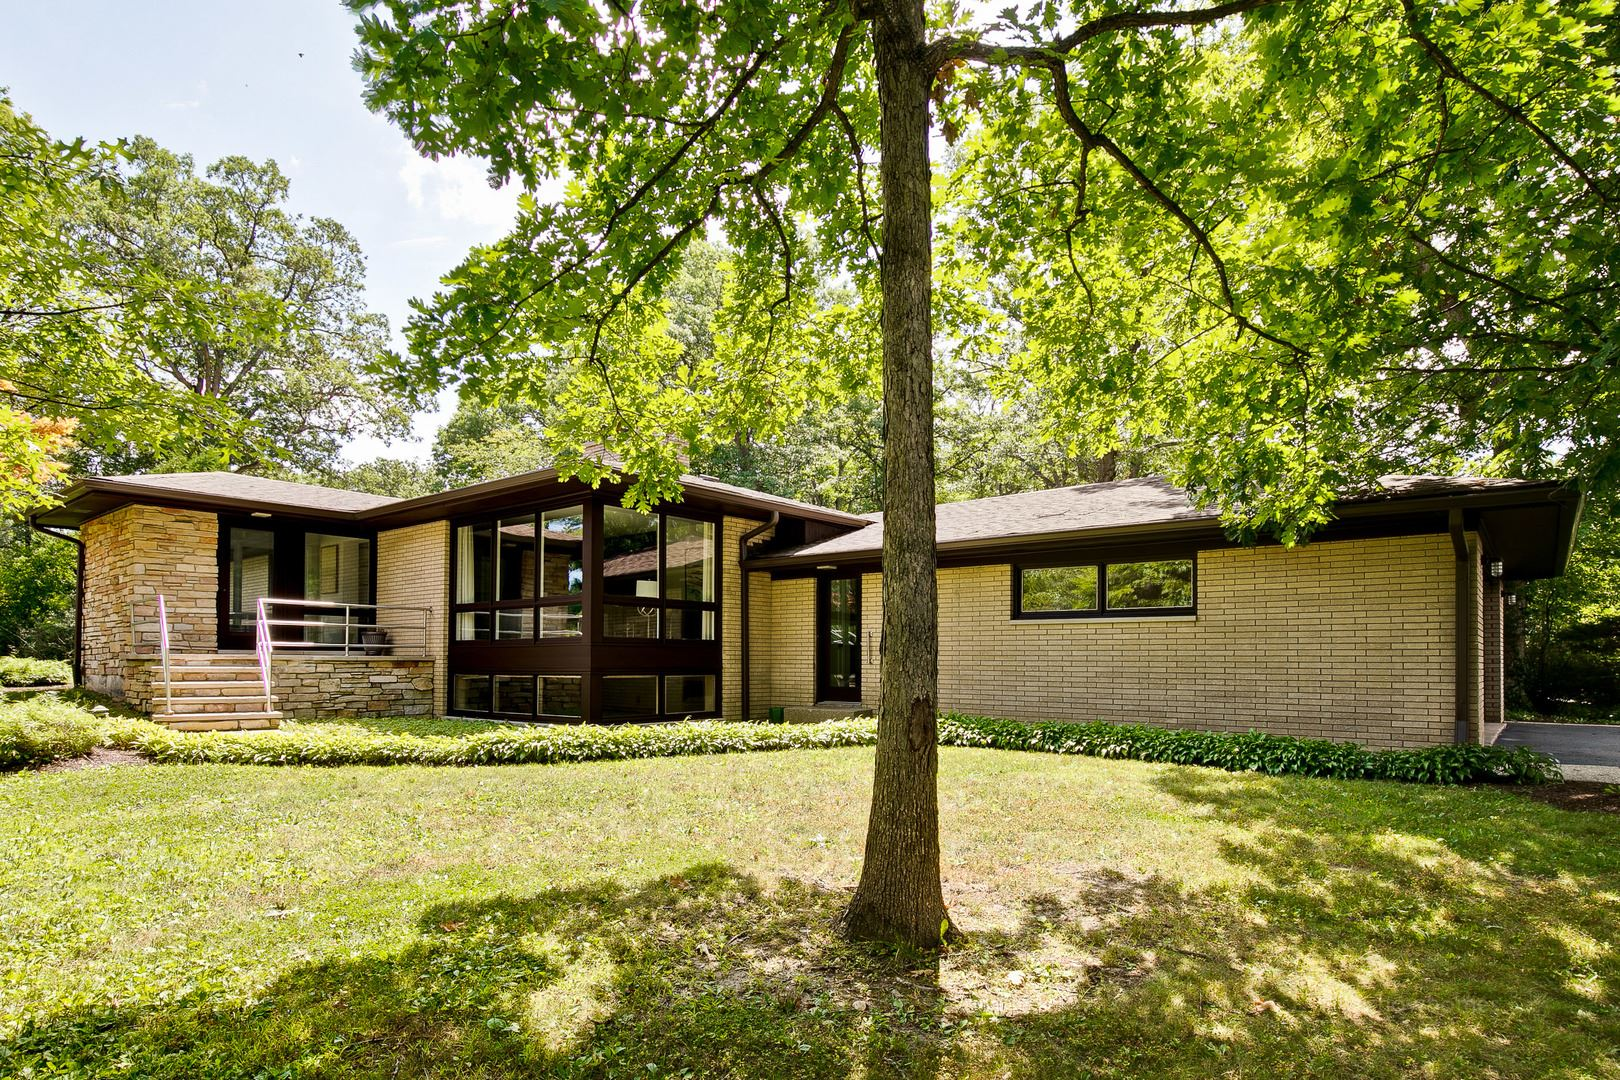 Photo for 511 Forest Hill Road, Lake Forest, IL 60045 (MLS # 10908334)